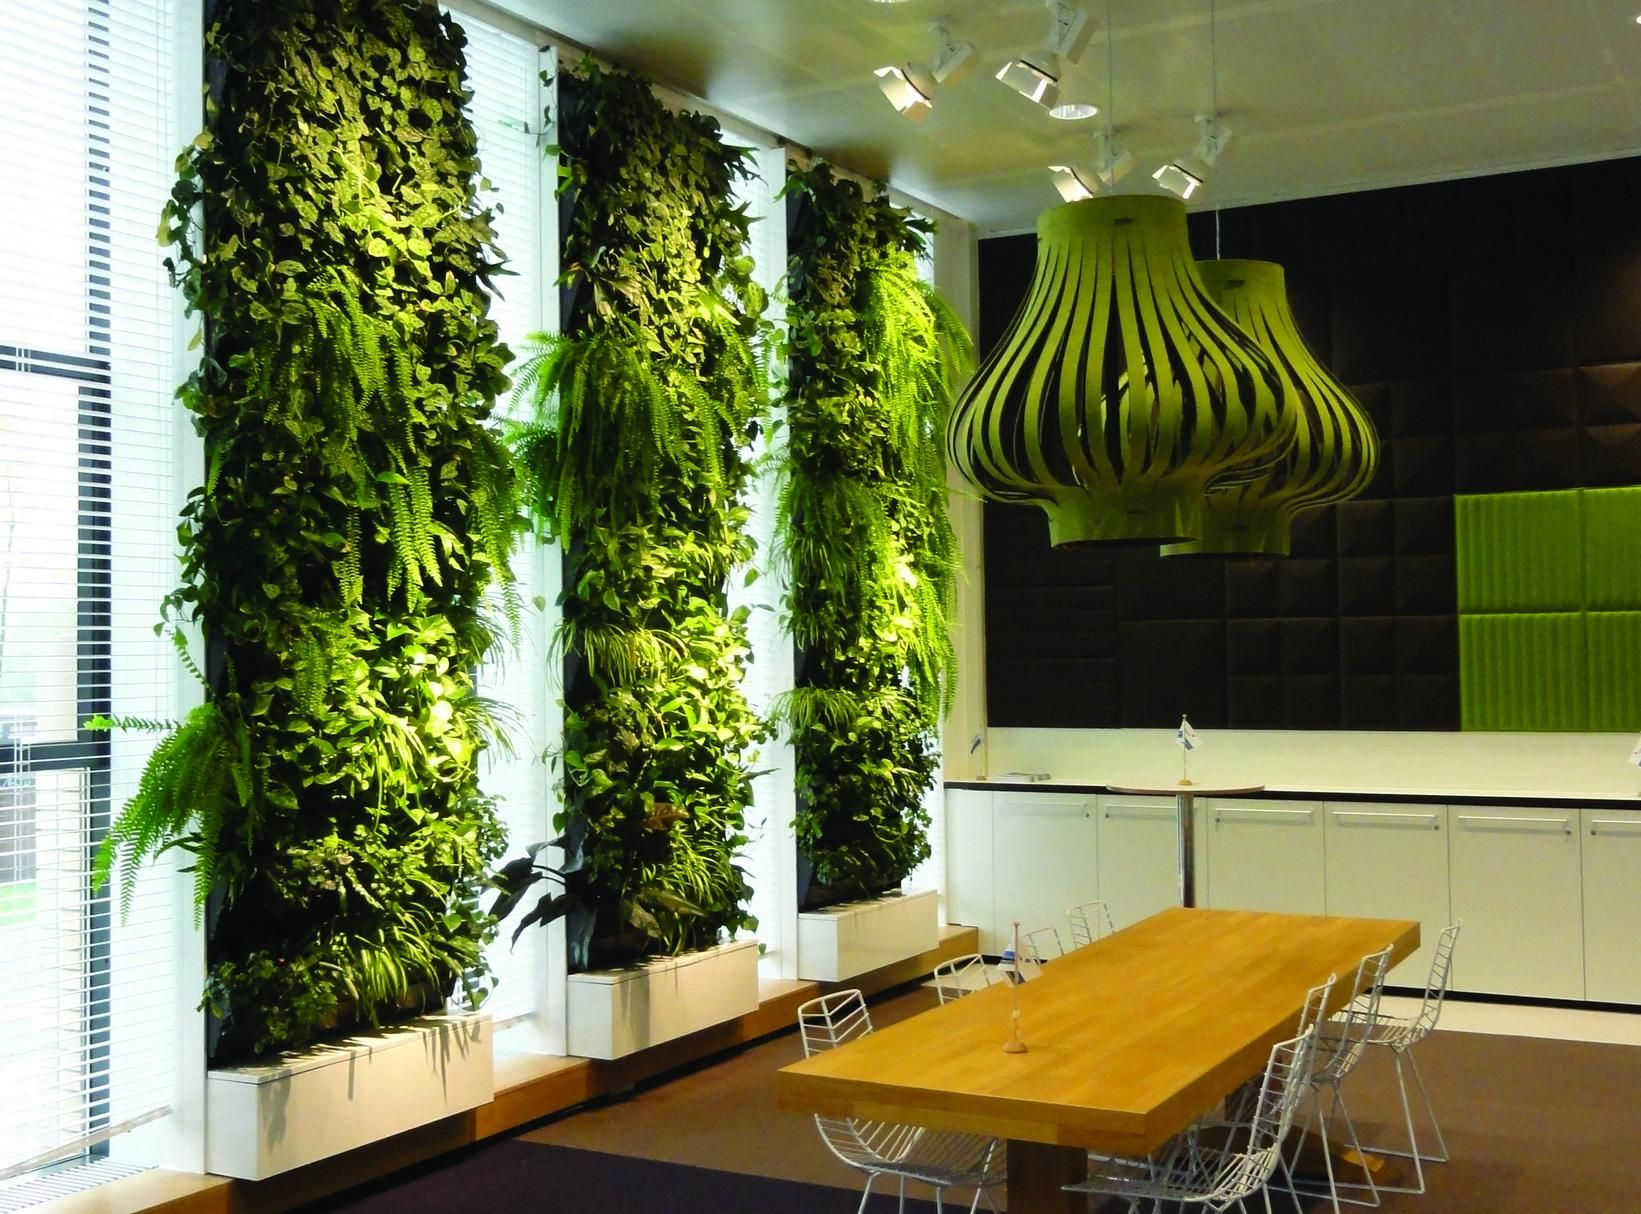 Livewall green wall system make conferences more comfortable - Artificial Vertical Garden Green Wall